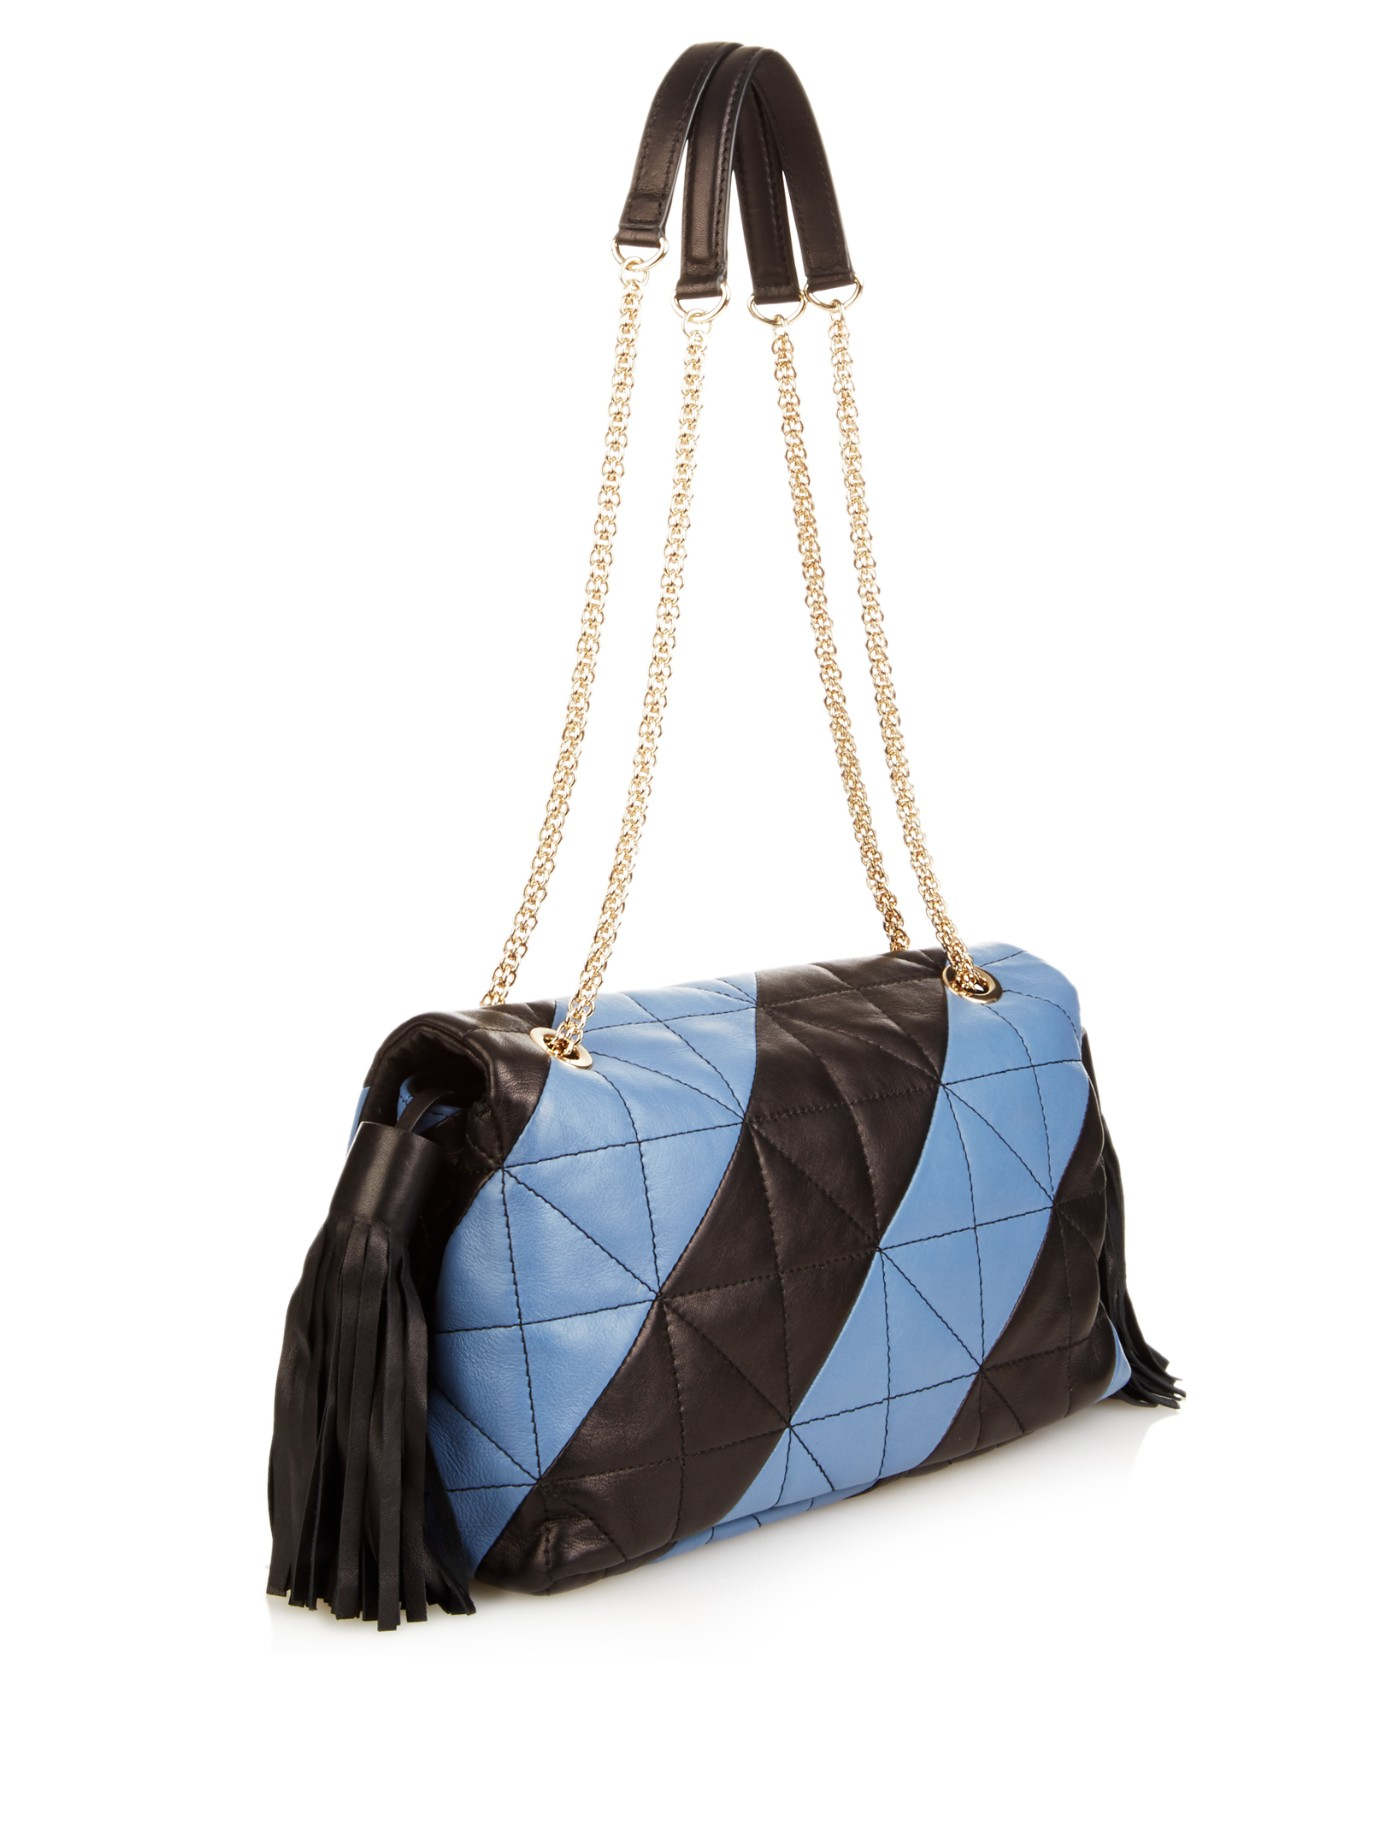 Le Clou Quilted Bag Sonia Rykiel tzgh9sLIIY